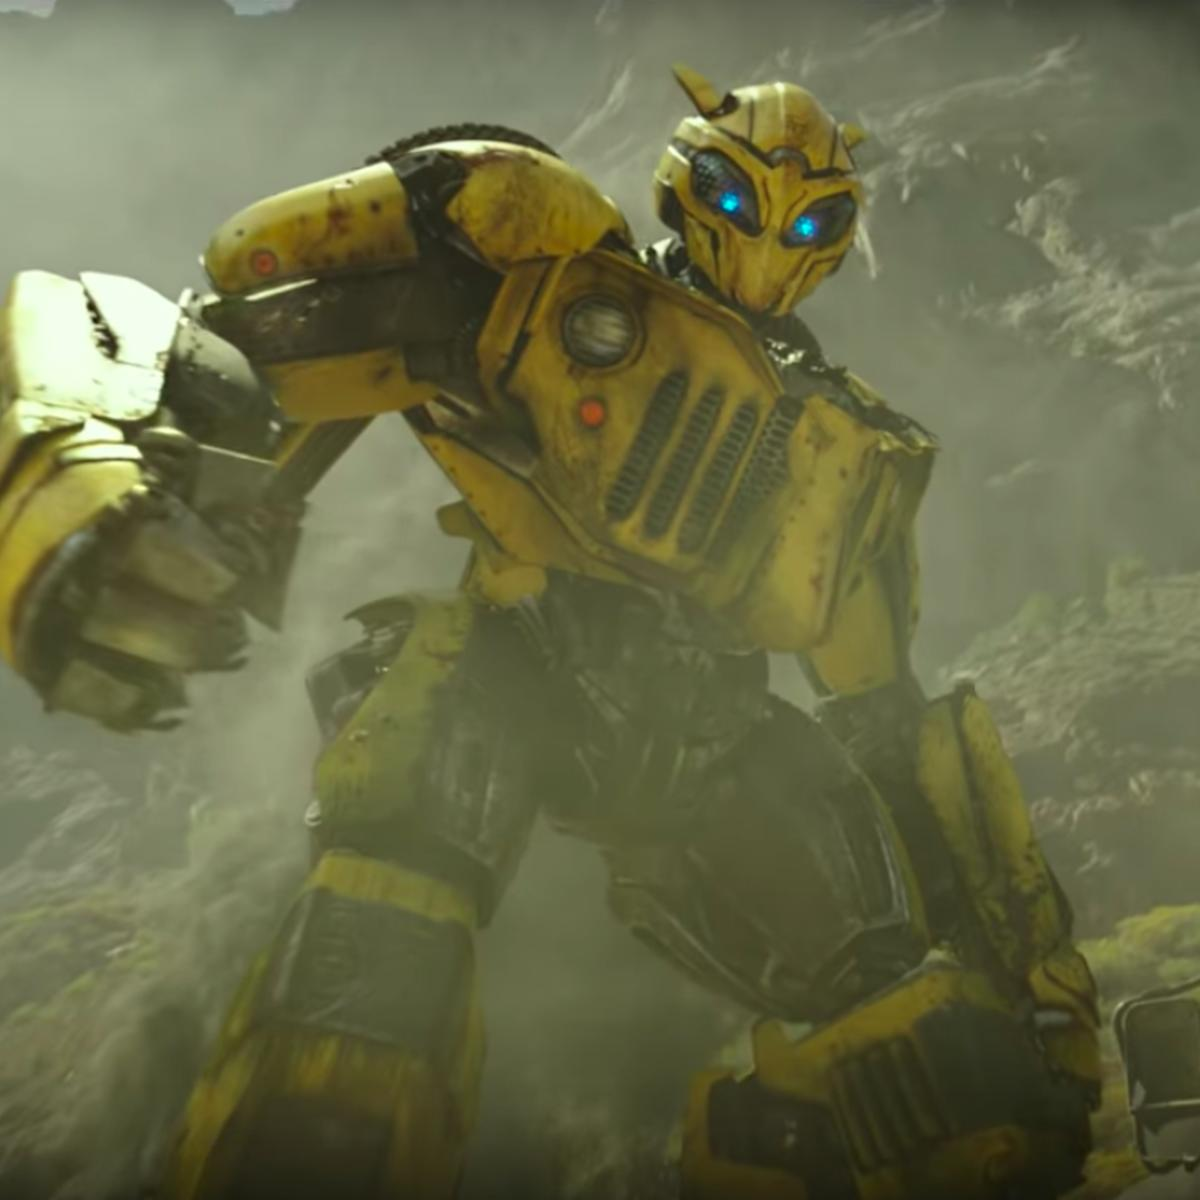 The New Bumblebee Trailer Just Dropped